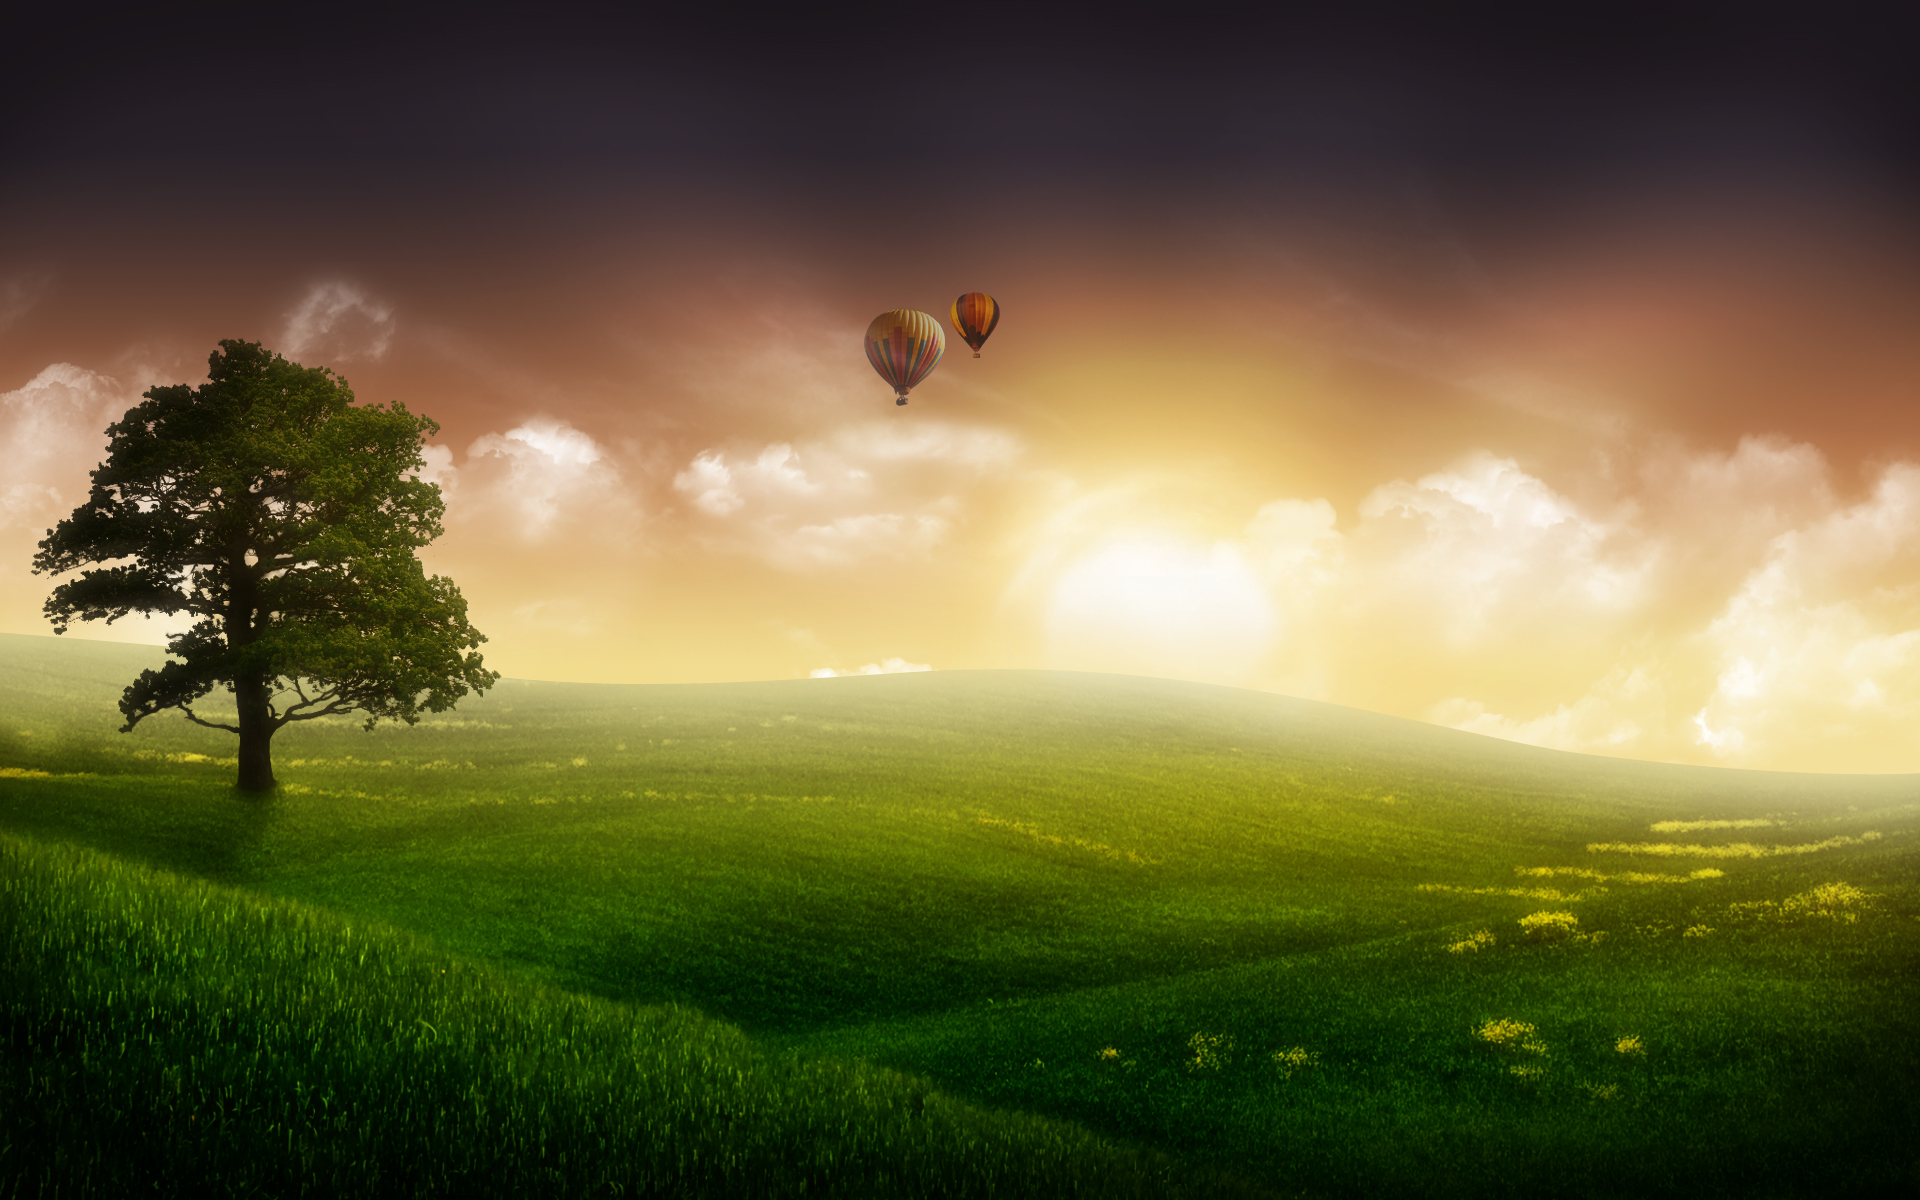 HD Wallpapers Nature Balloon Ride